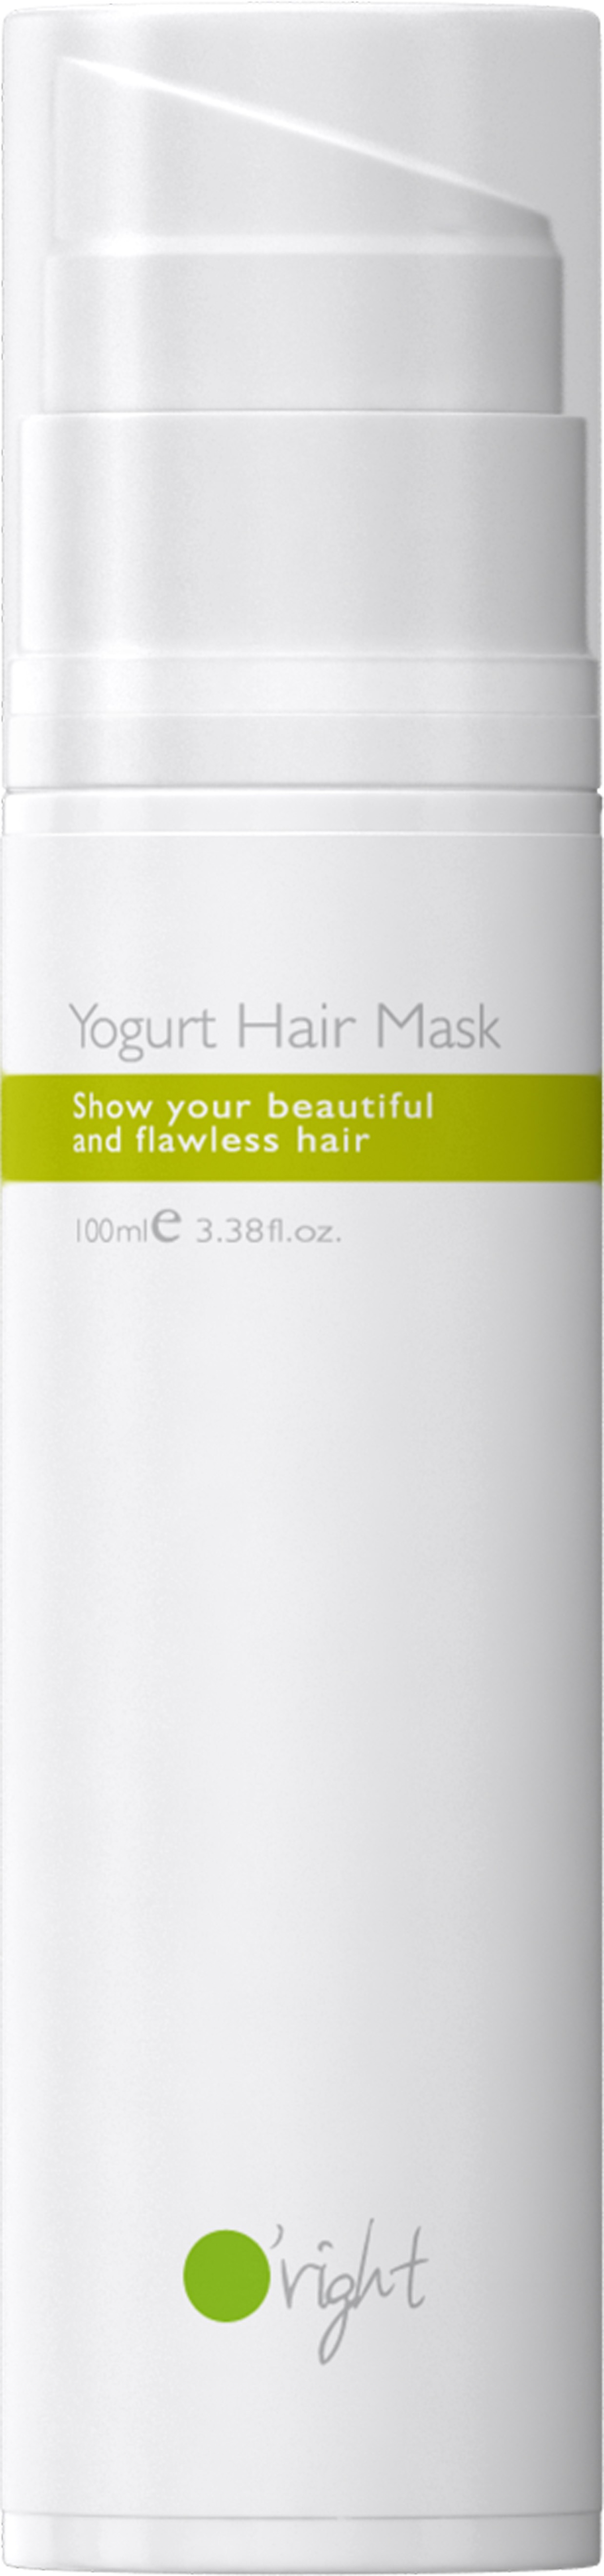 Yogurt Hair Mask 100ml